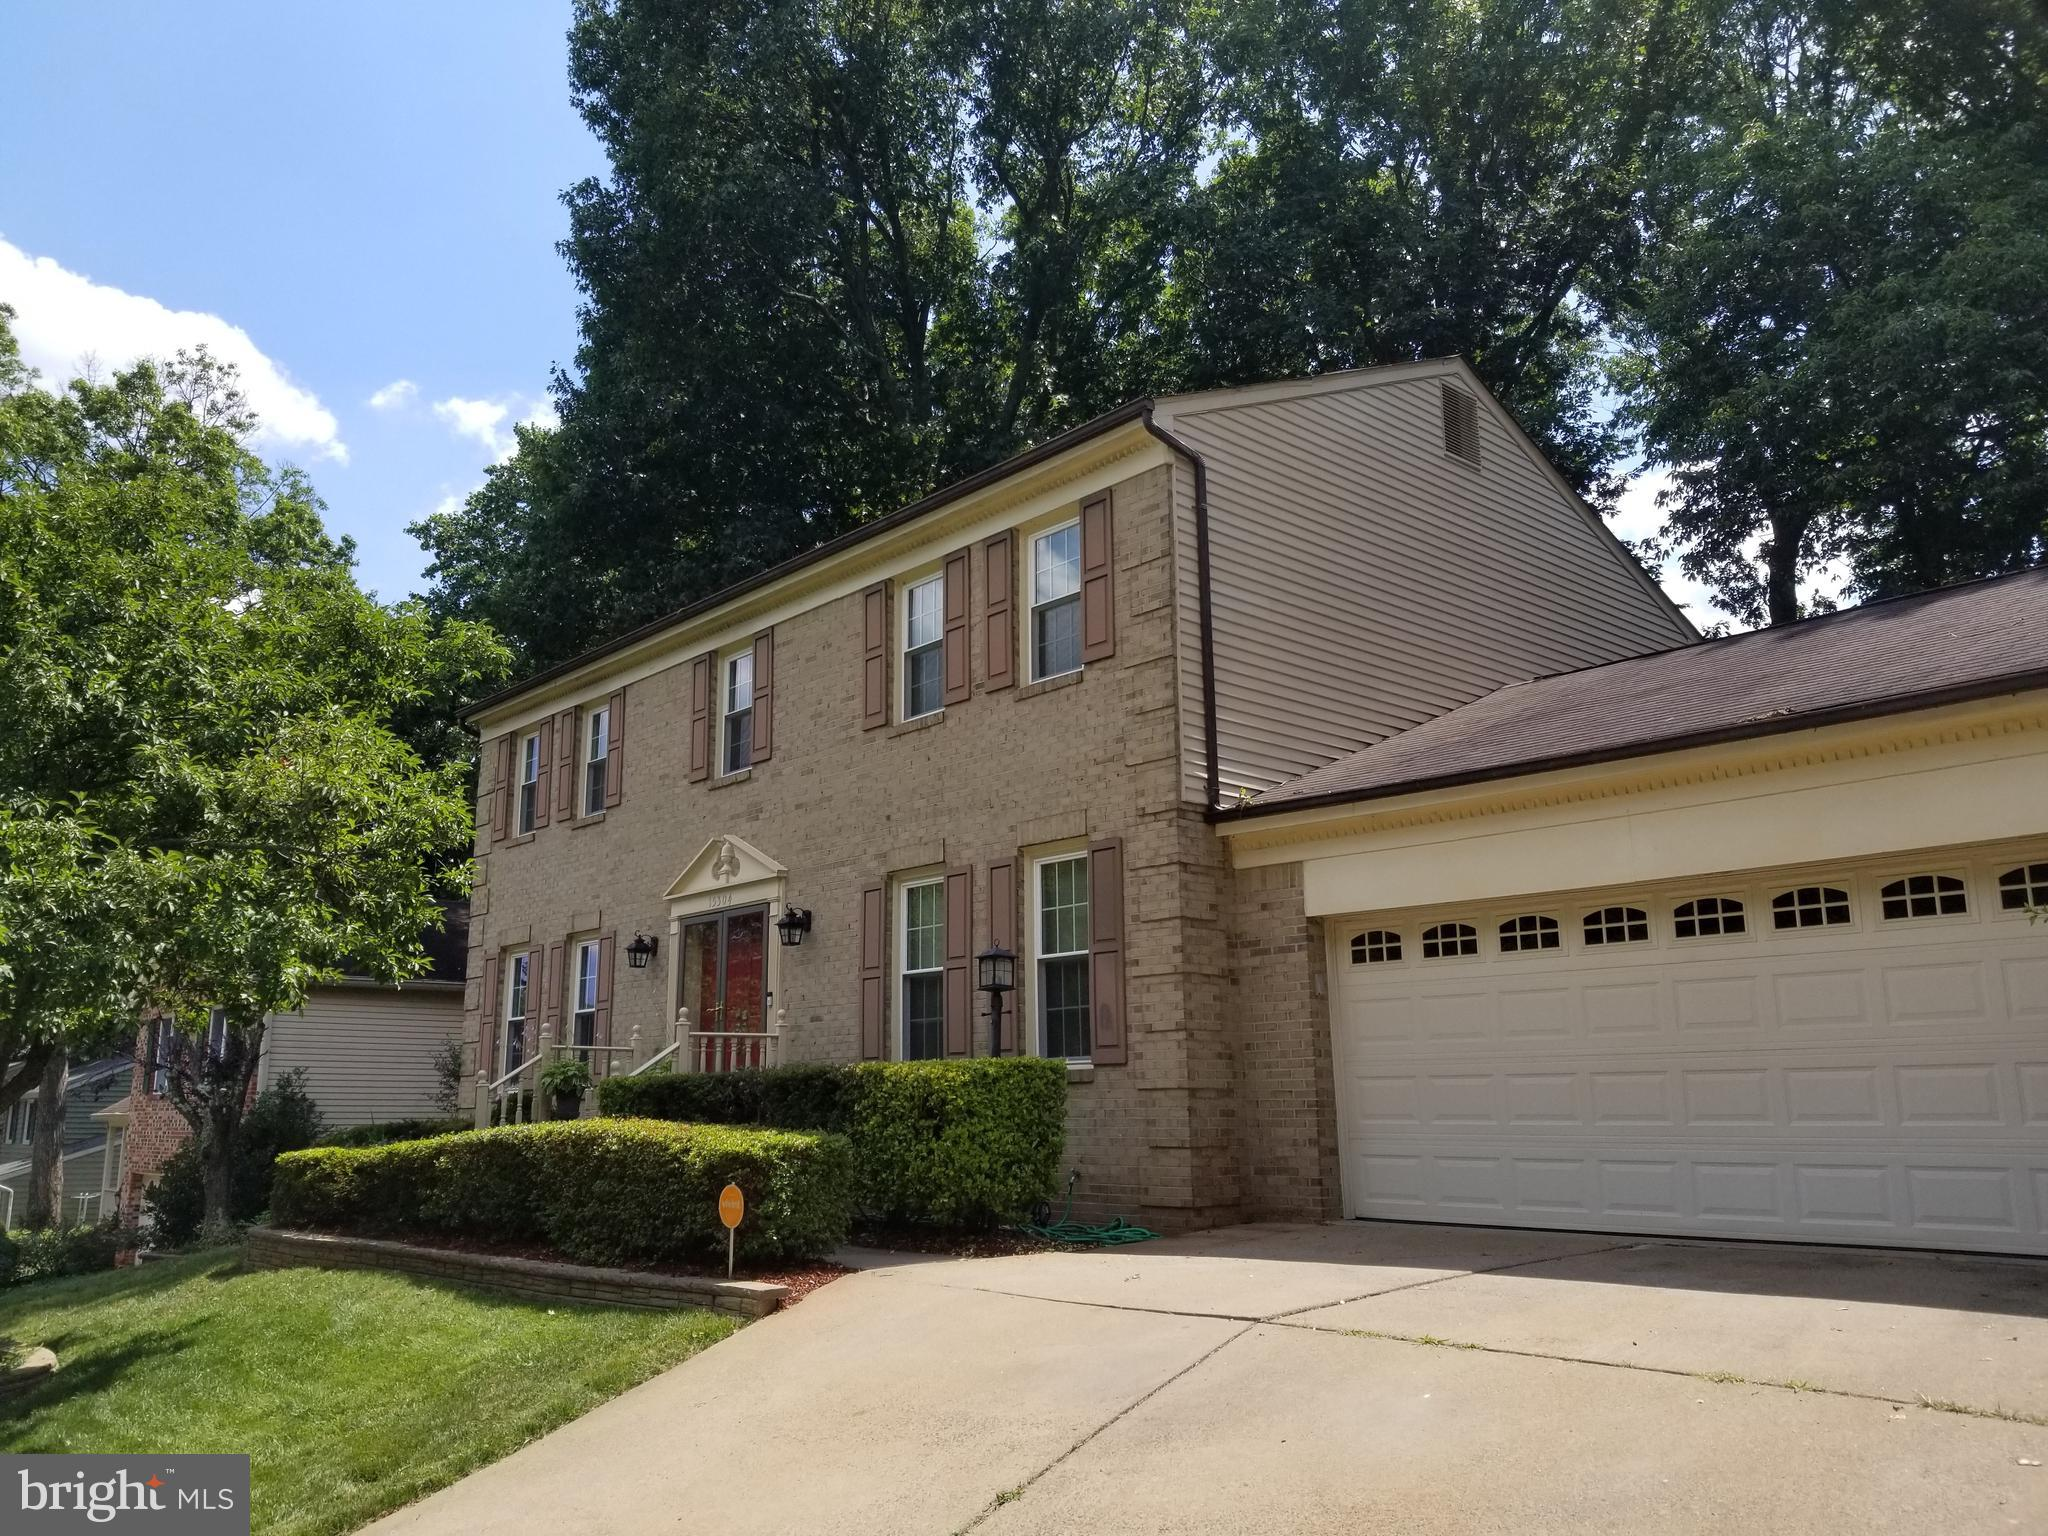 15304 HOLLY HILL DRIVE, DUMFRIES, VA 22025